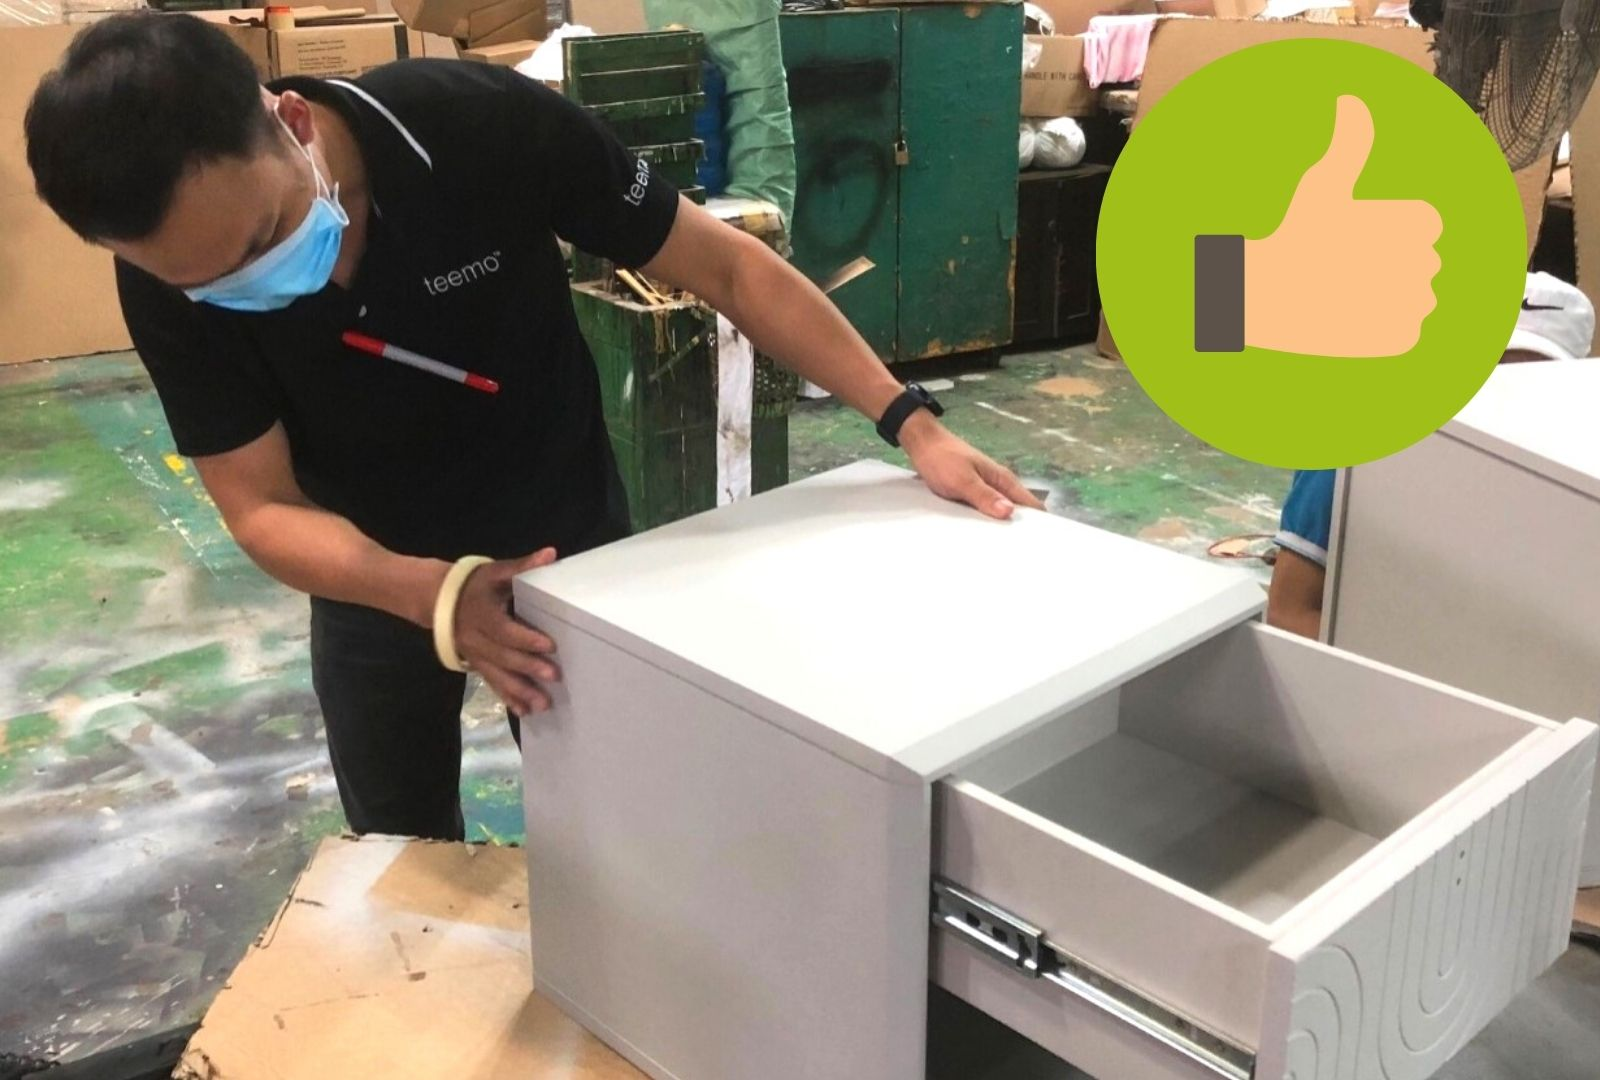 Our QC professional Richard checking the quality of a set of drawers.